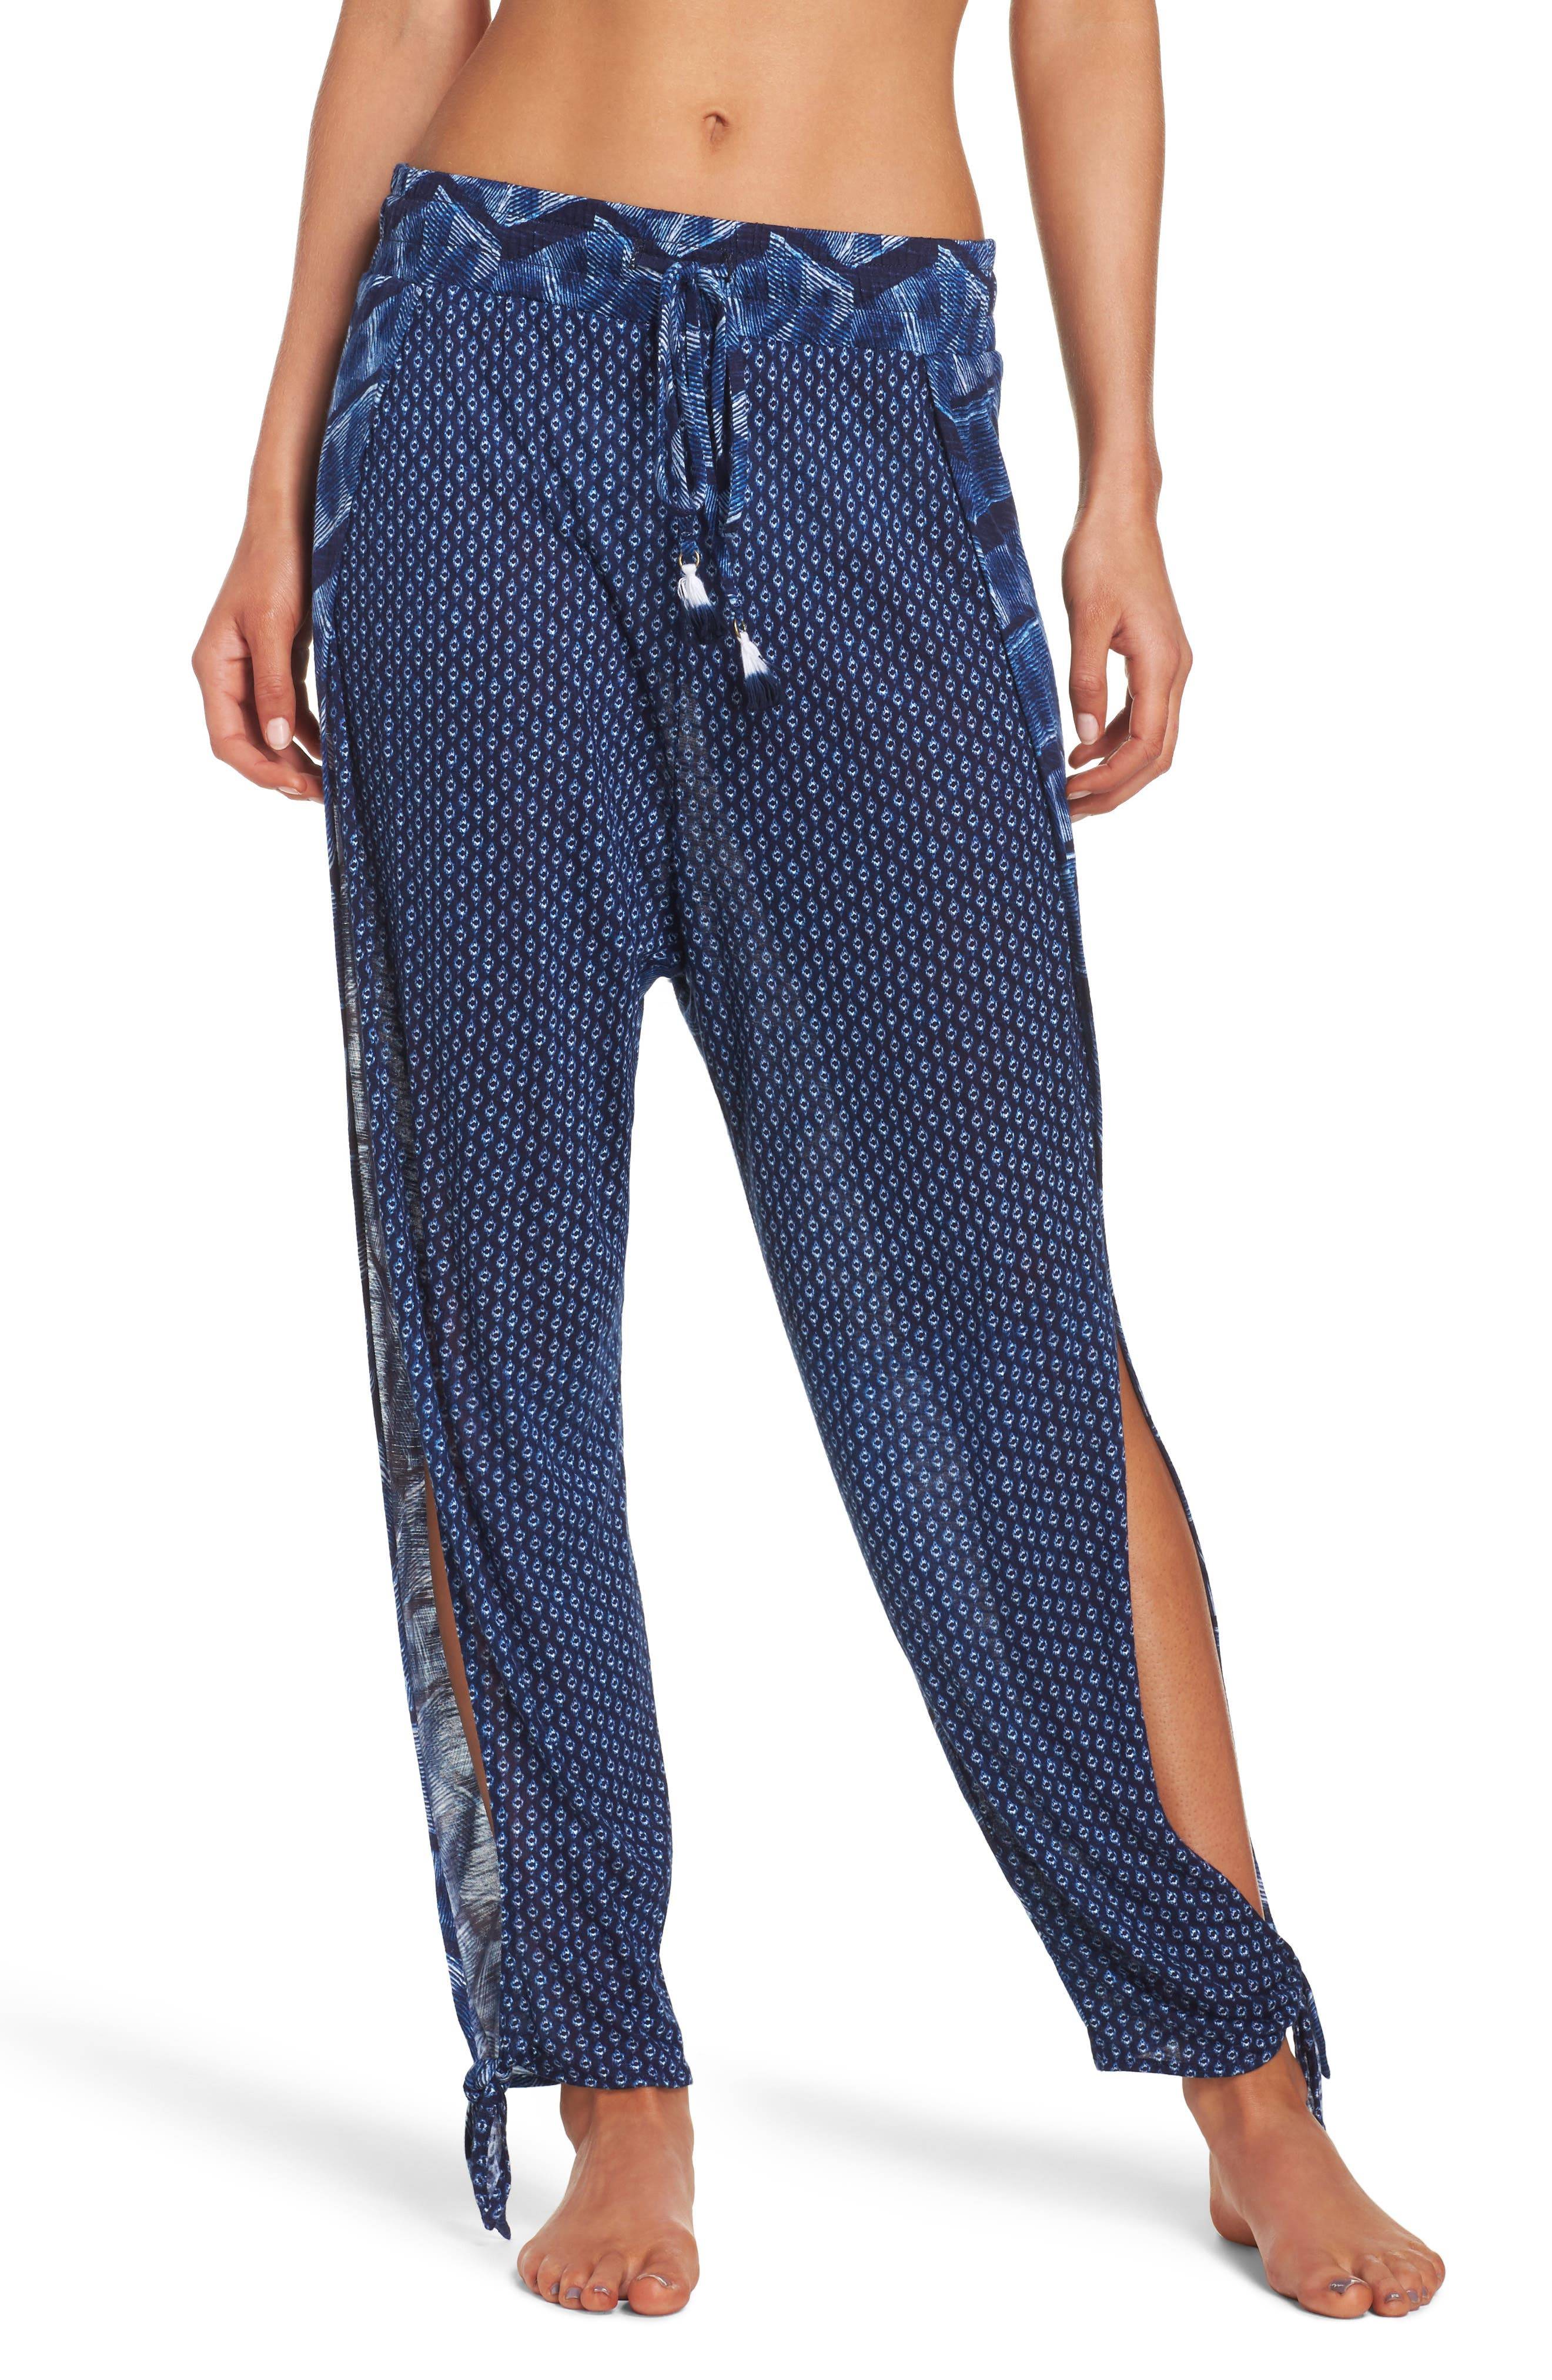 Nomad Ankle Tie Cover-Up Pants,                         Main,                         color, Navy